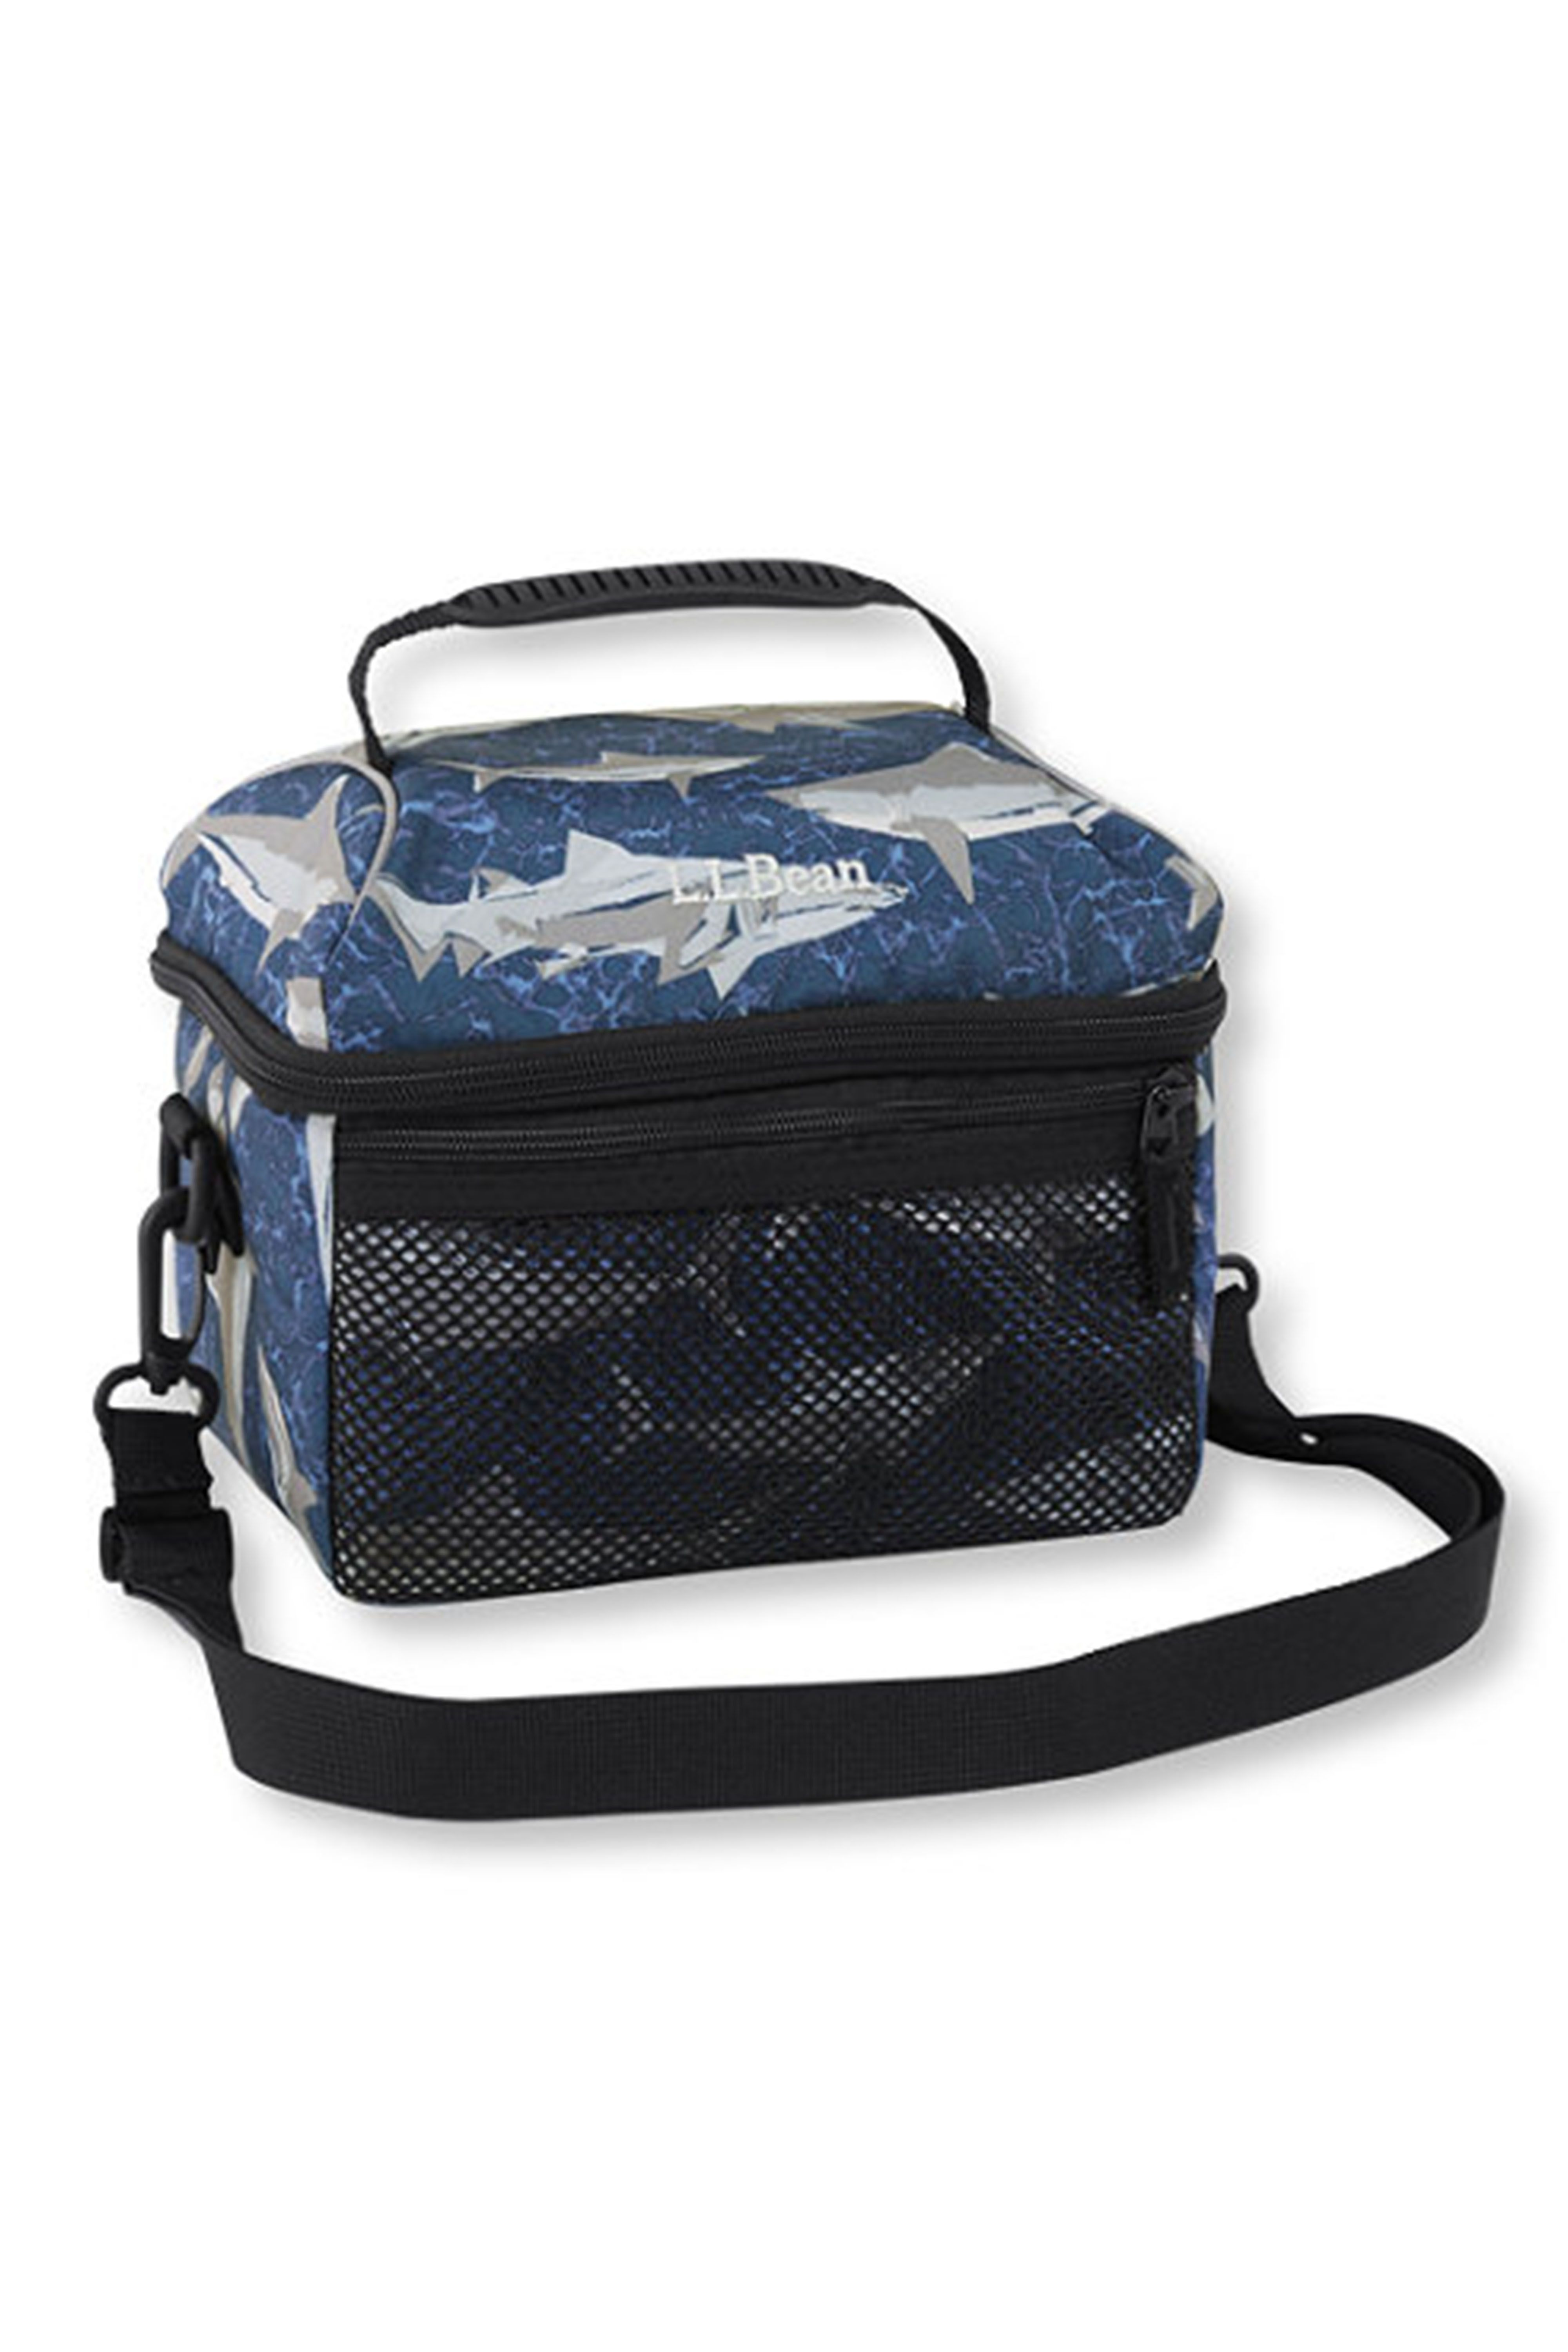 16 Best Kids Lunch Boxes   Bags 2019 - Top Rated School Lunch Box Reviews 8a5f4f5eee042